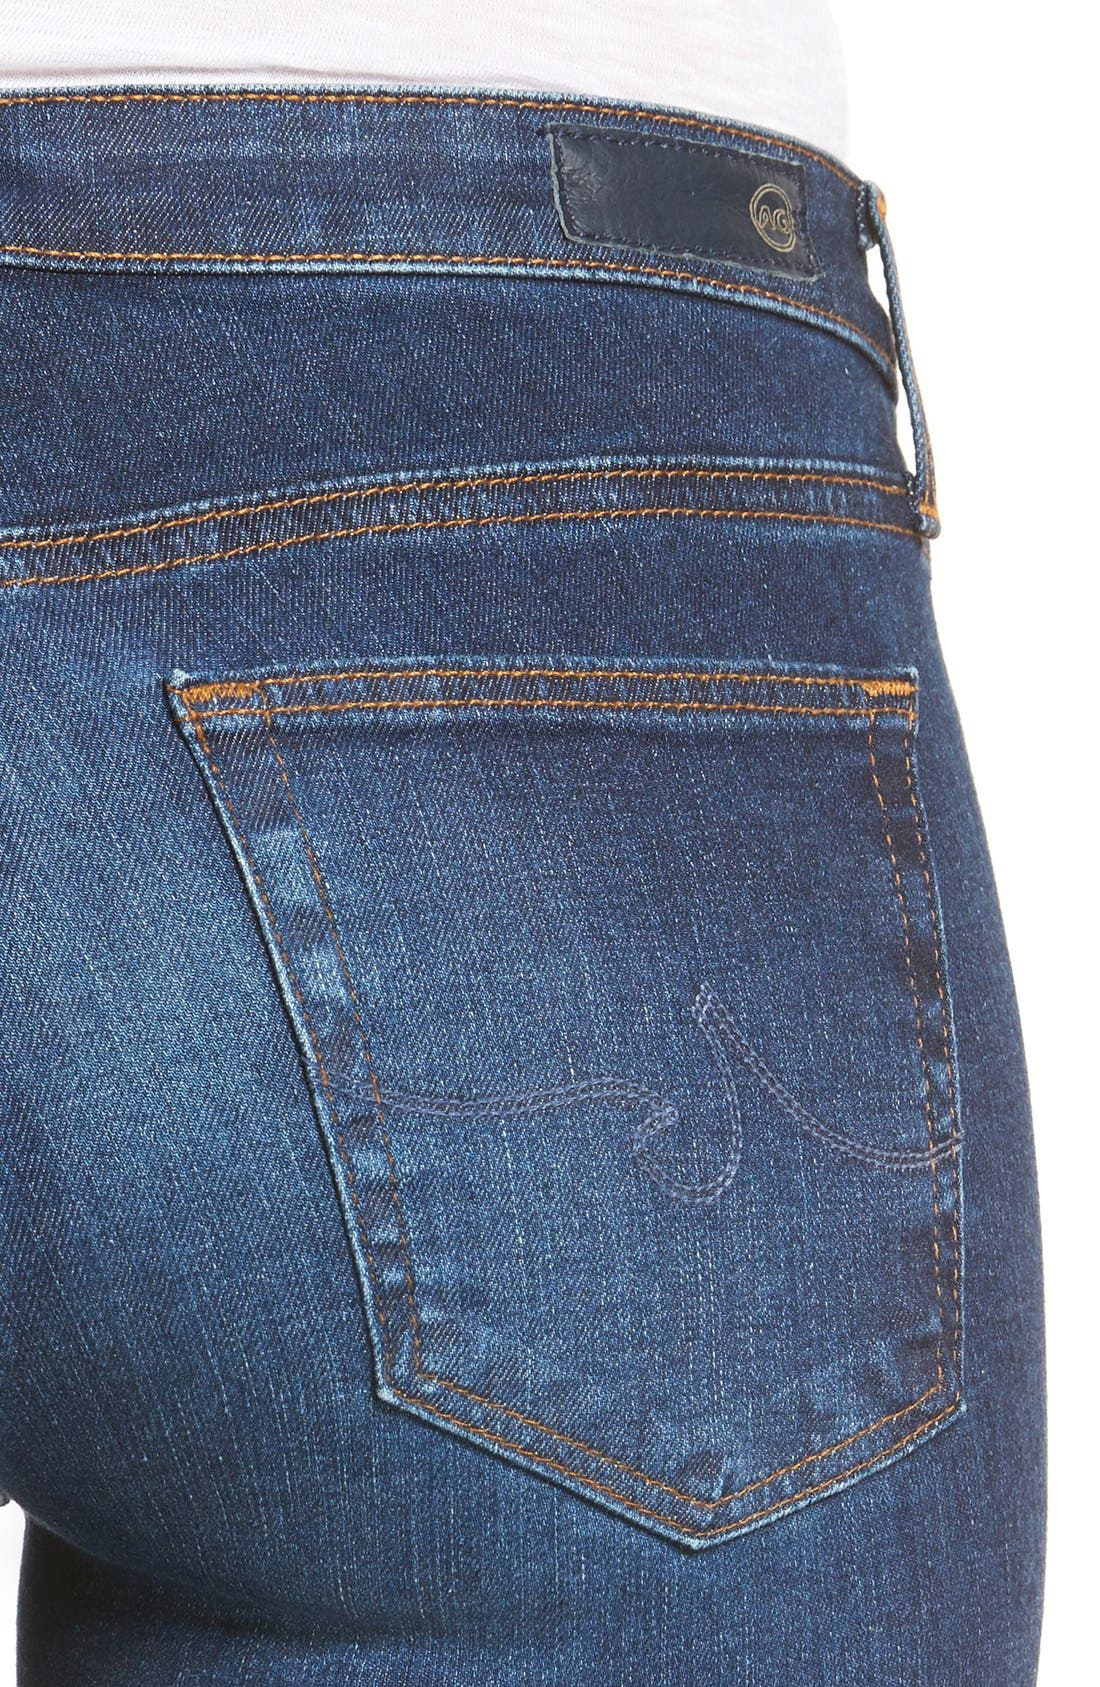 'Prima' Skinny Jeans,                             Alternate thumbnail 27, color,